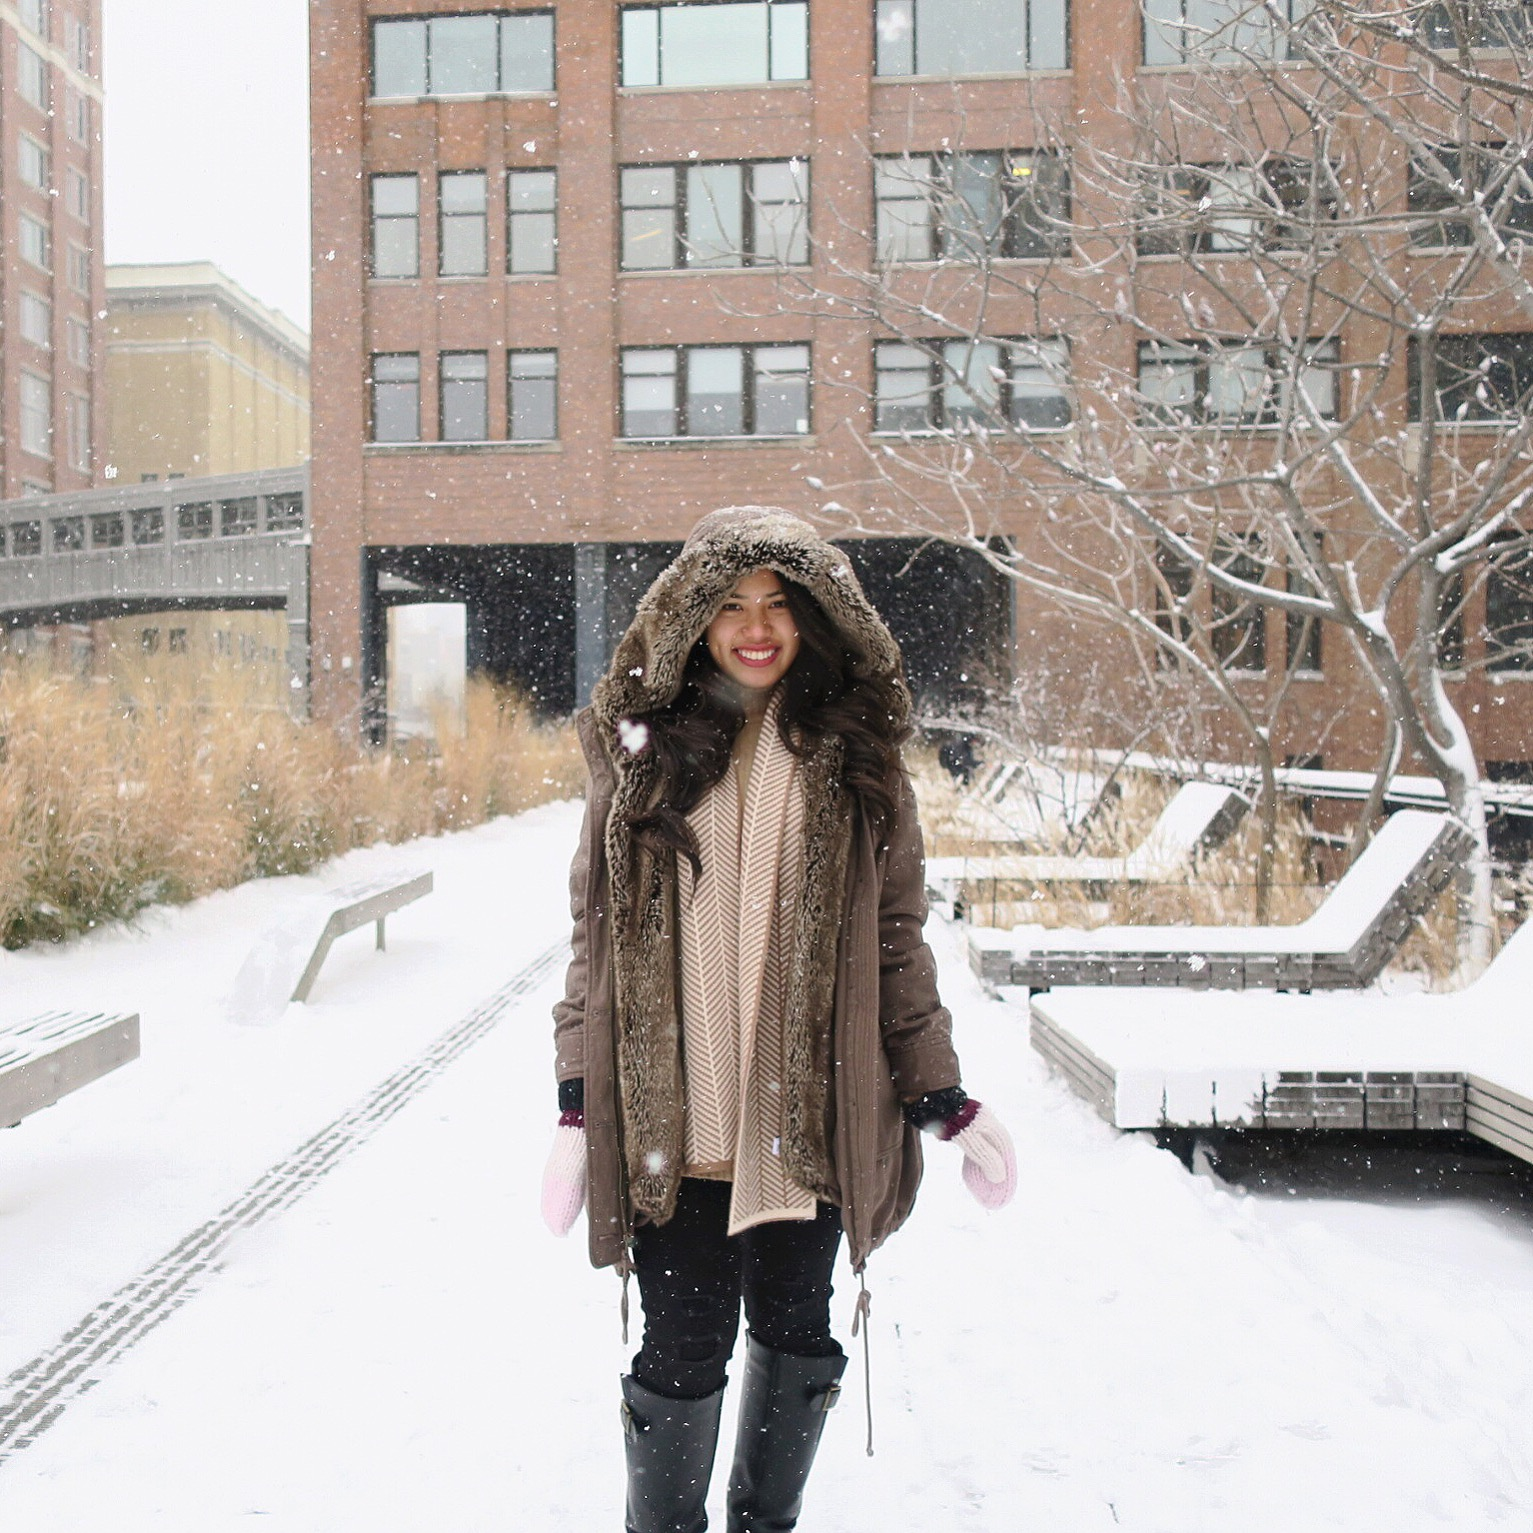 Lucky for me (debatable among other people), I was in NYC during the snow storm and got to experience soooo much snow!  YAY !